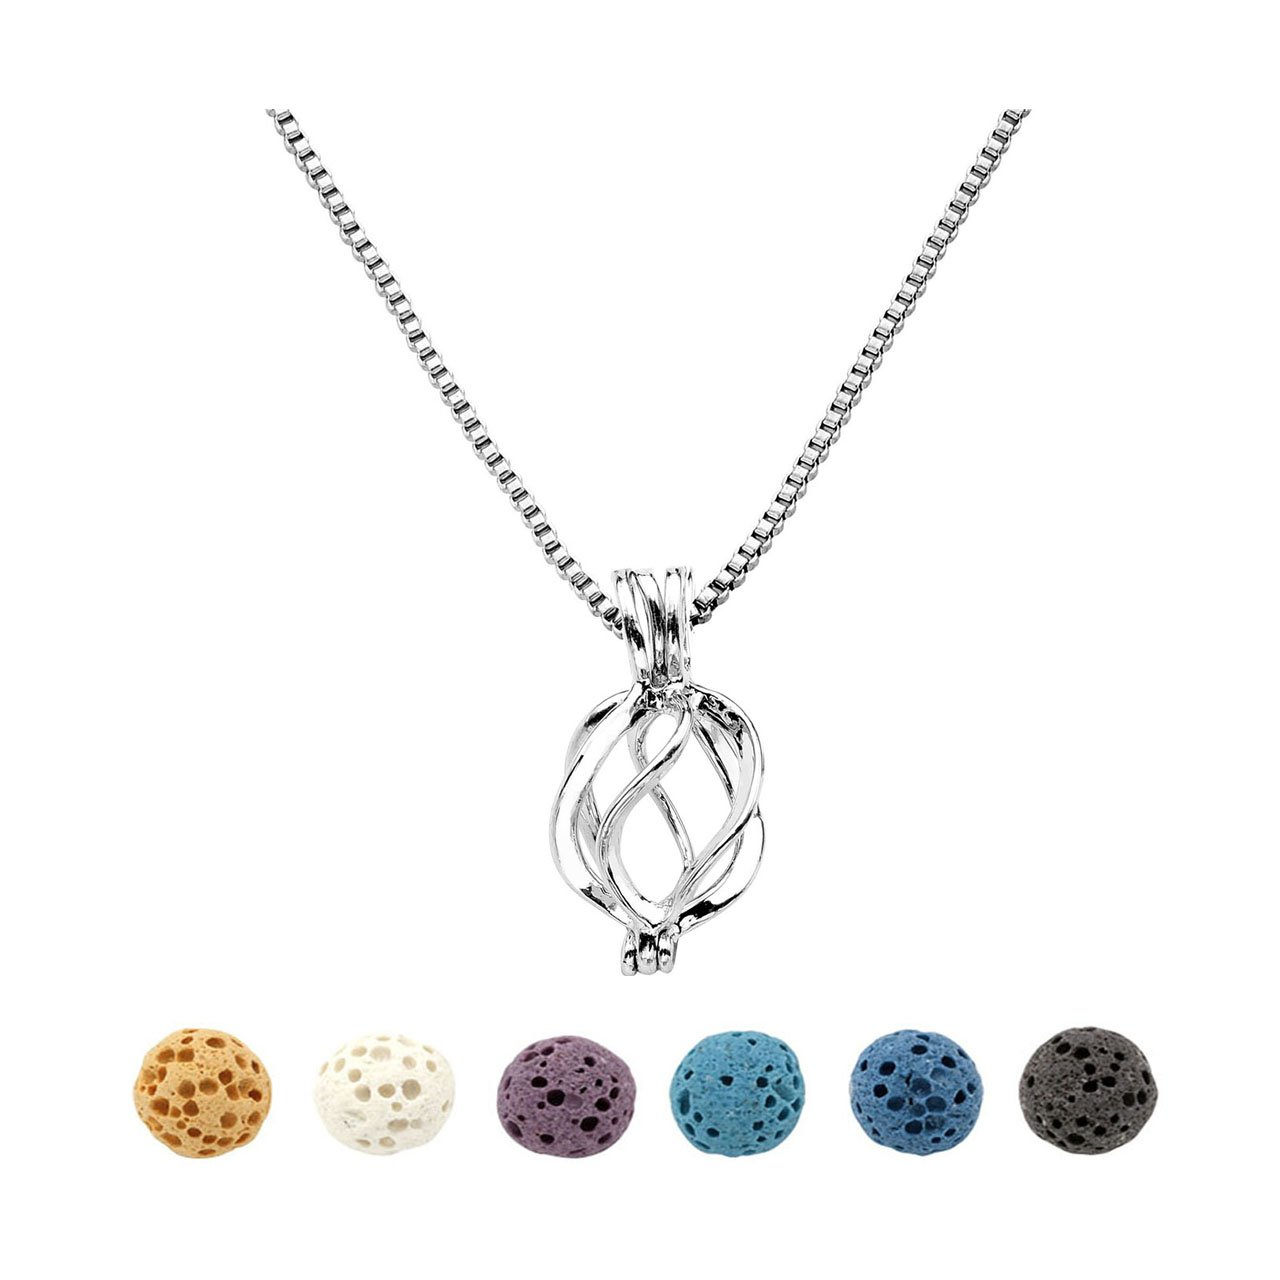 Top Plaza Natural Lava Rock Stone Aromatherapy Essential Oil Diffuser Necklace Silver Locket Pendant With 6 Dyed Lava Beads(Twisted Round) ATPUS65699